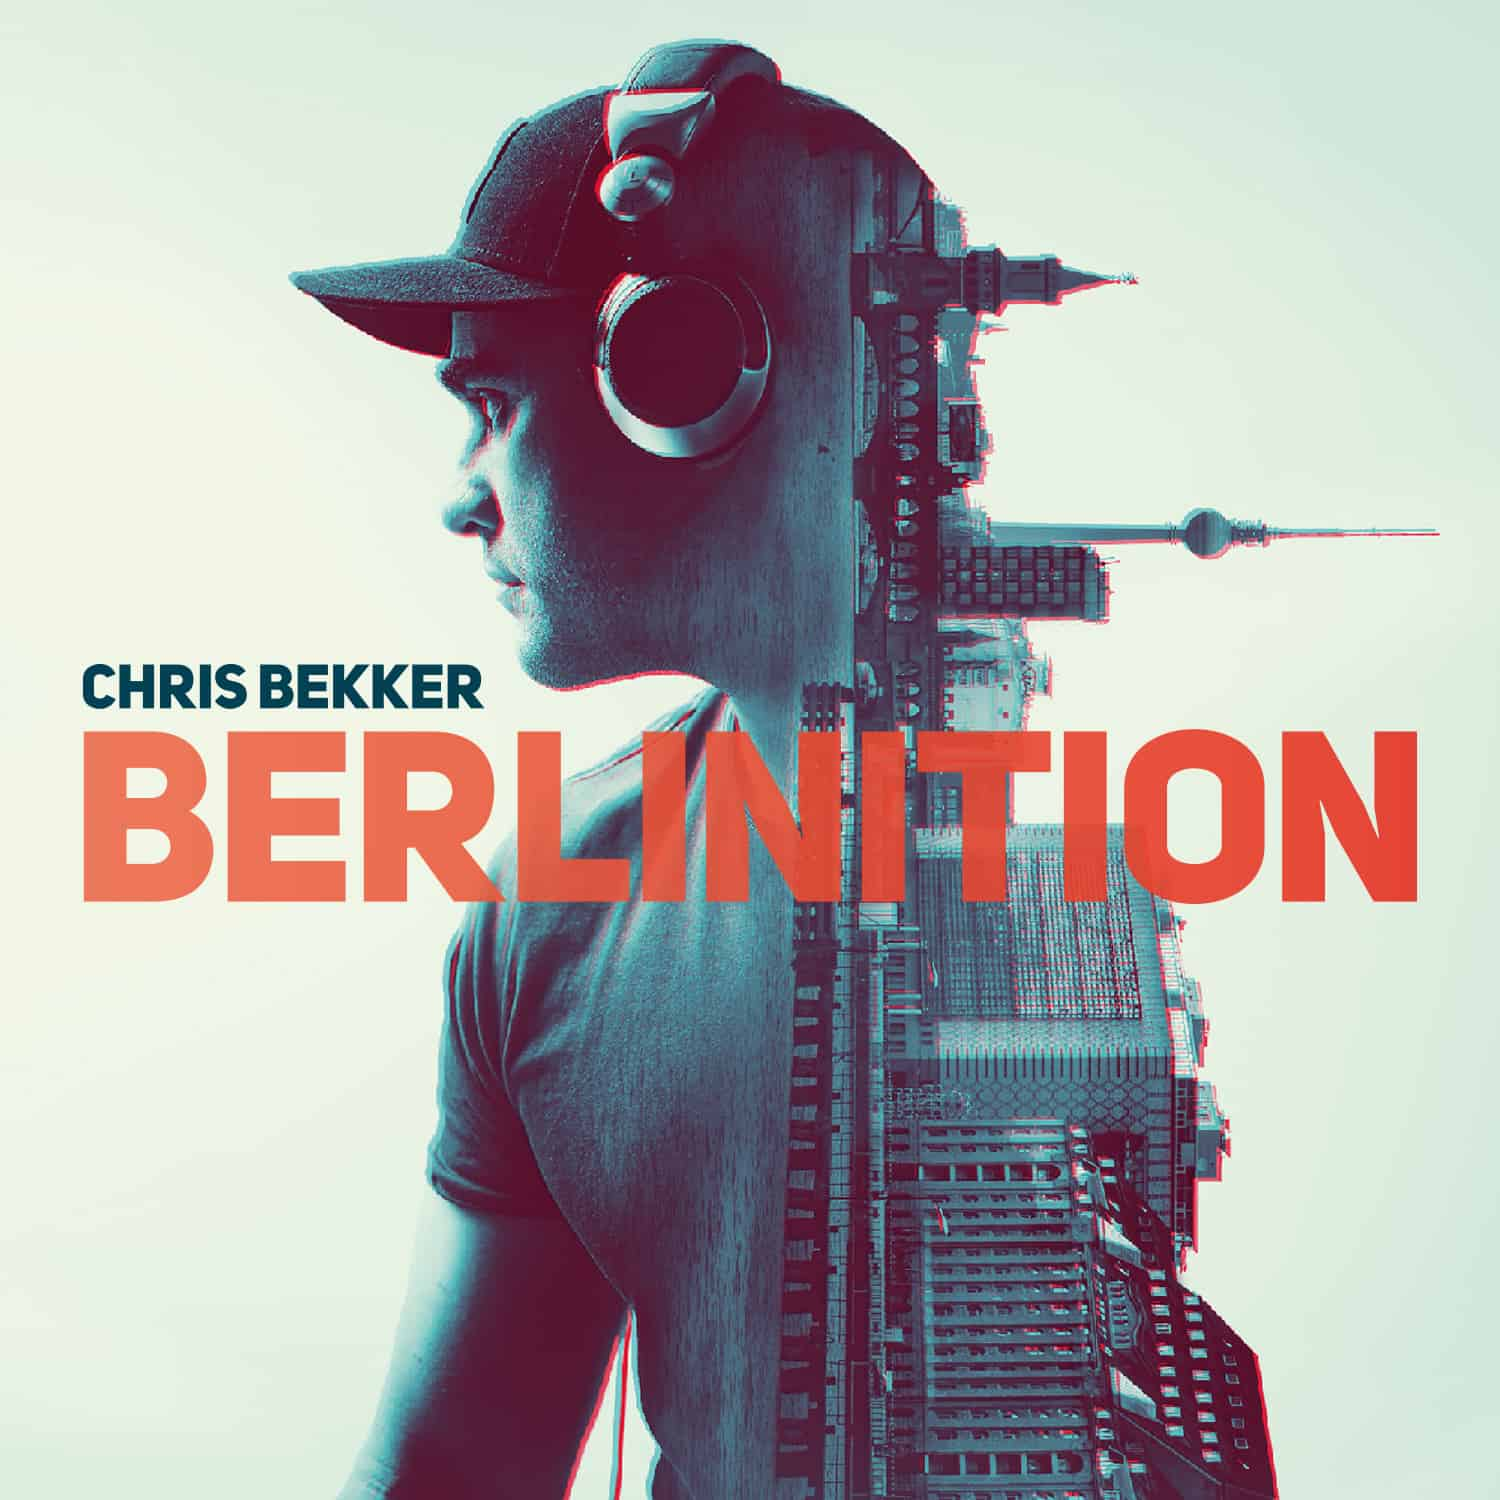 Chris Bekker - Berlinition